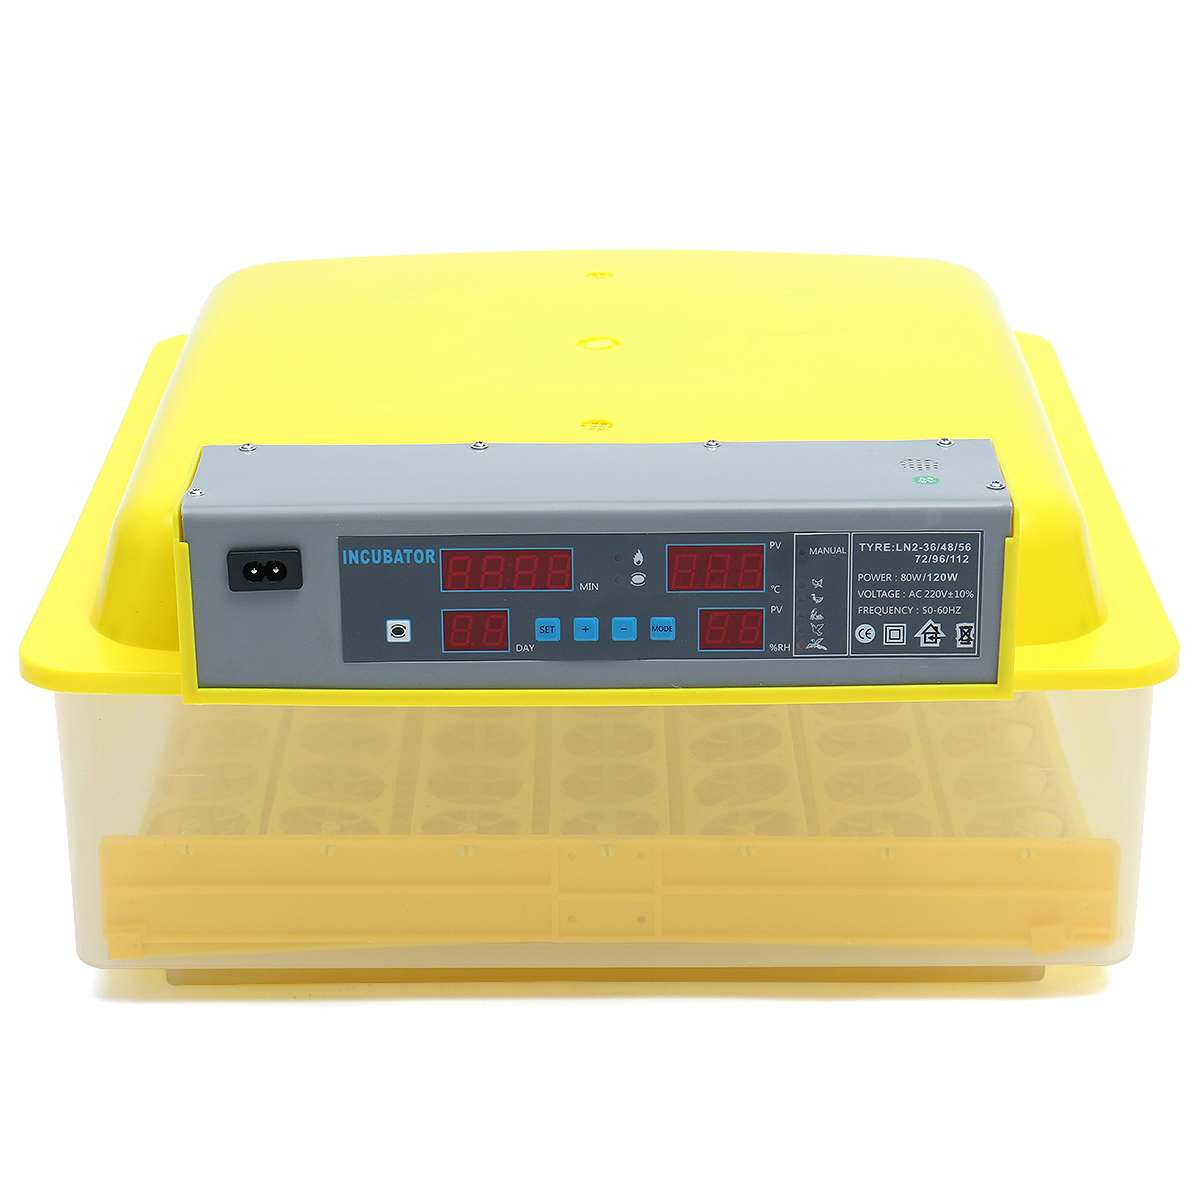 56 Egg Brooder Digital Fully Automatic Incubator Hatcher Turning Chicken Duck Humidity Temperature Control New Hatching machine56 Egg Brooder Digital Fully Automatic Incubator Hatcher Turning Chicken Duck Humidity Temperature Control New Hatching machine